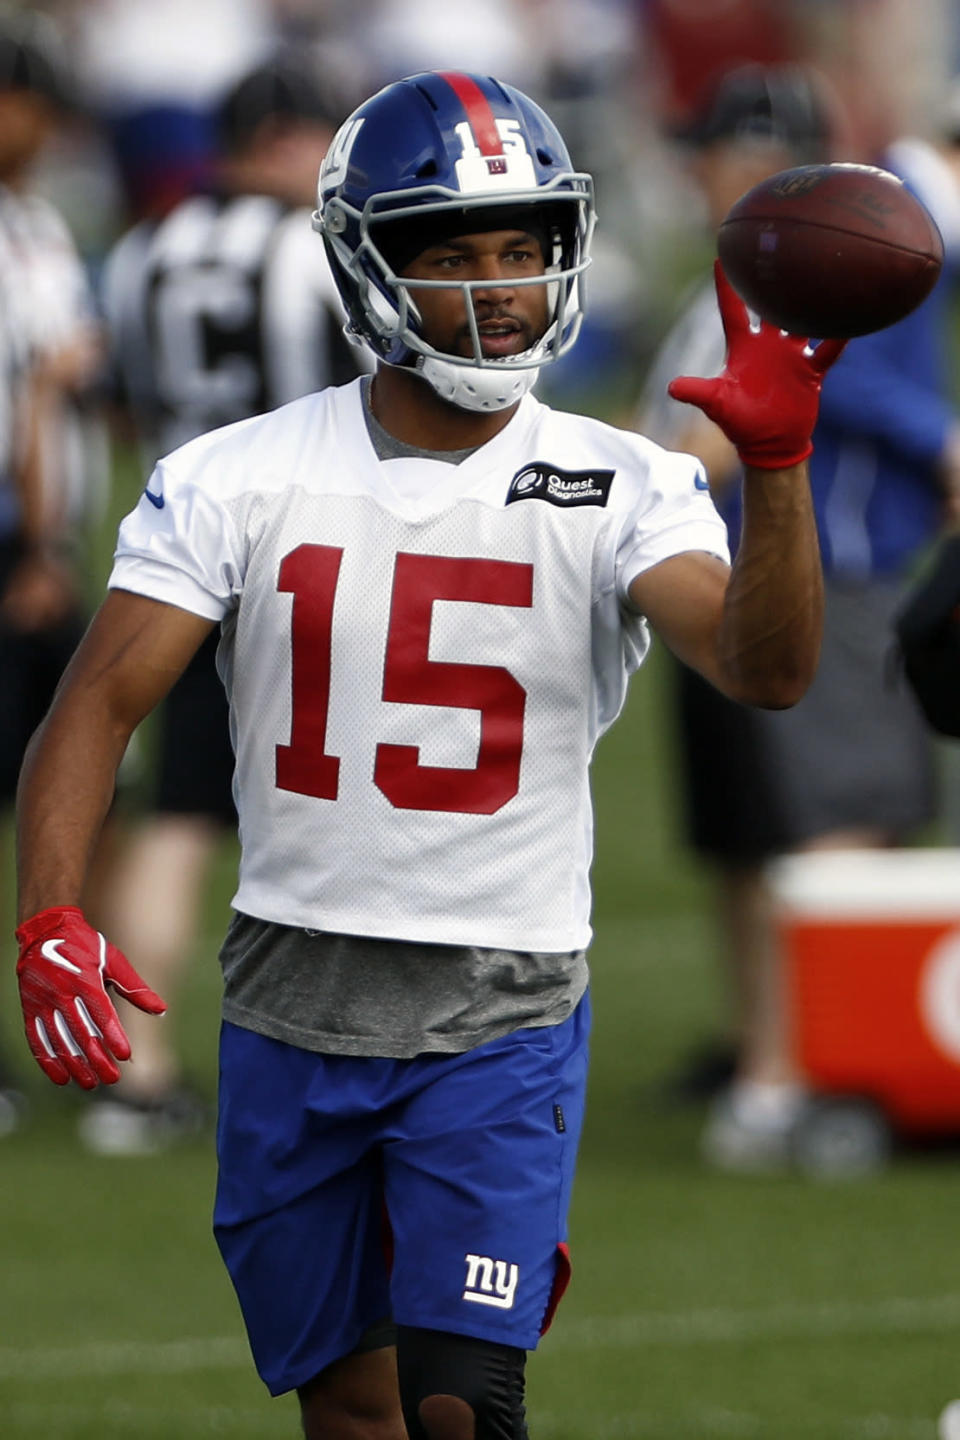 FILE - In this May 20, 2019, file photo, New York Giants wide receiver Golden Tate makes a catch during an NFL football practice in East Rutherford, N.J. Golden Tate has had the appeal of his four-game suspension for a violation of the NFL's policy on performance enhancers turned down. The decision by an independent arbiter was announced Tuesday, Aug. 13, 2019, and means the 10-year-veteran will miss the first four games of the regular season, starting with Dallas on Sept. 8. (AP Photo/Adam Hunger, File)